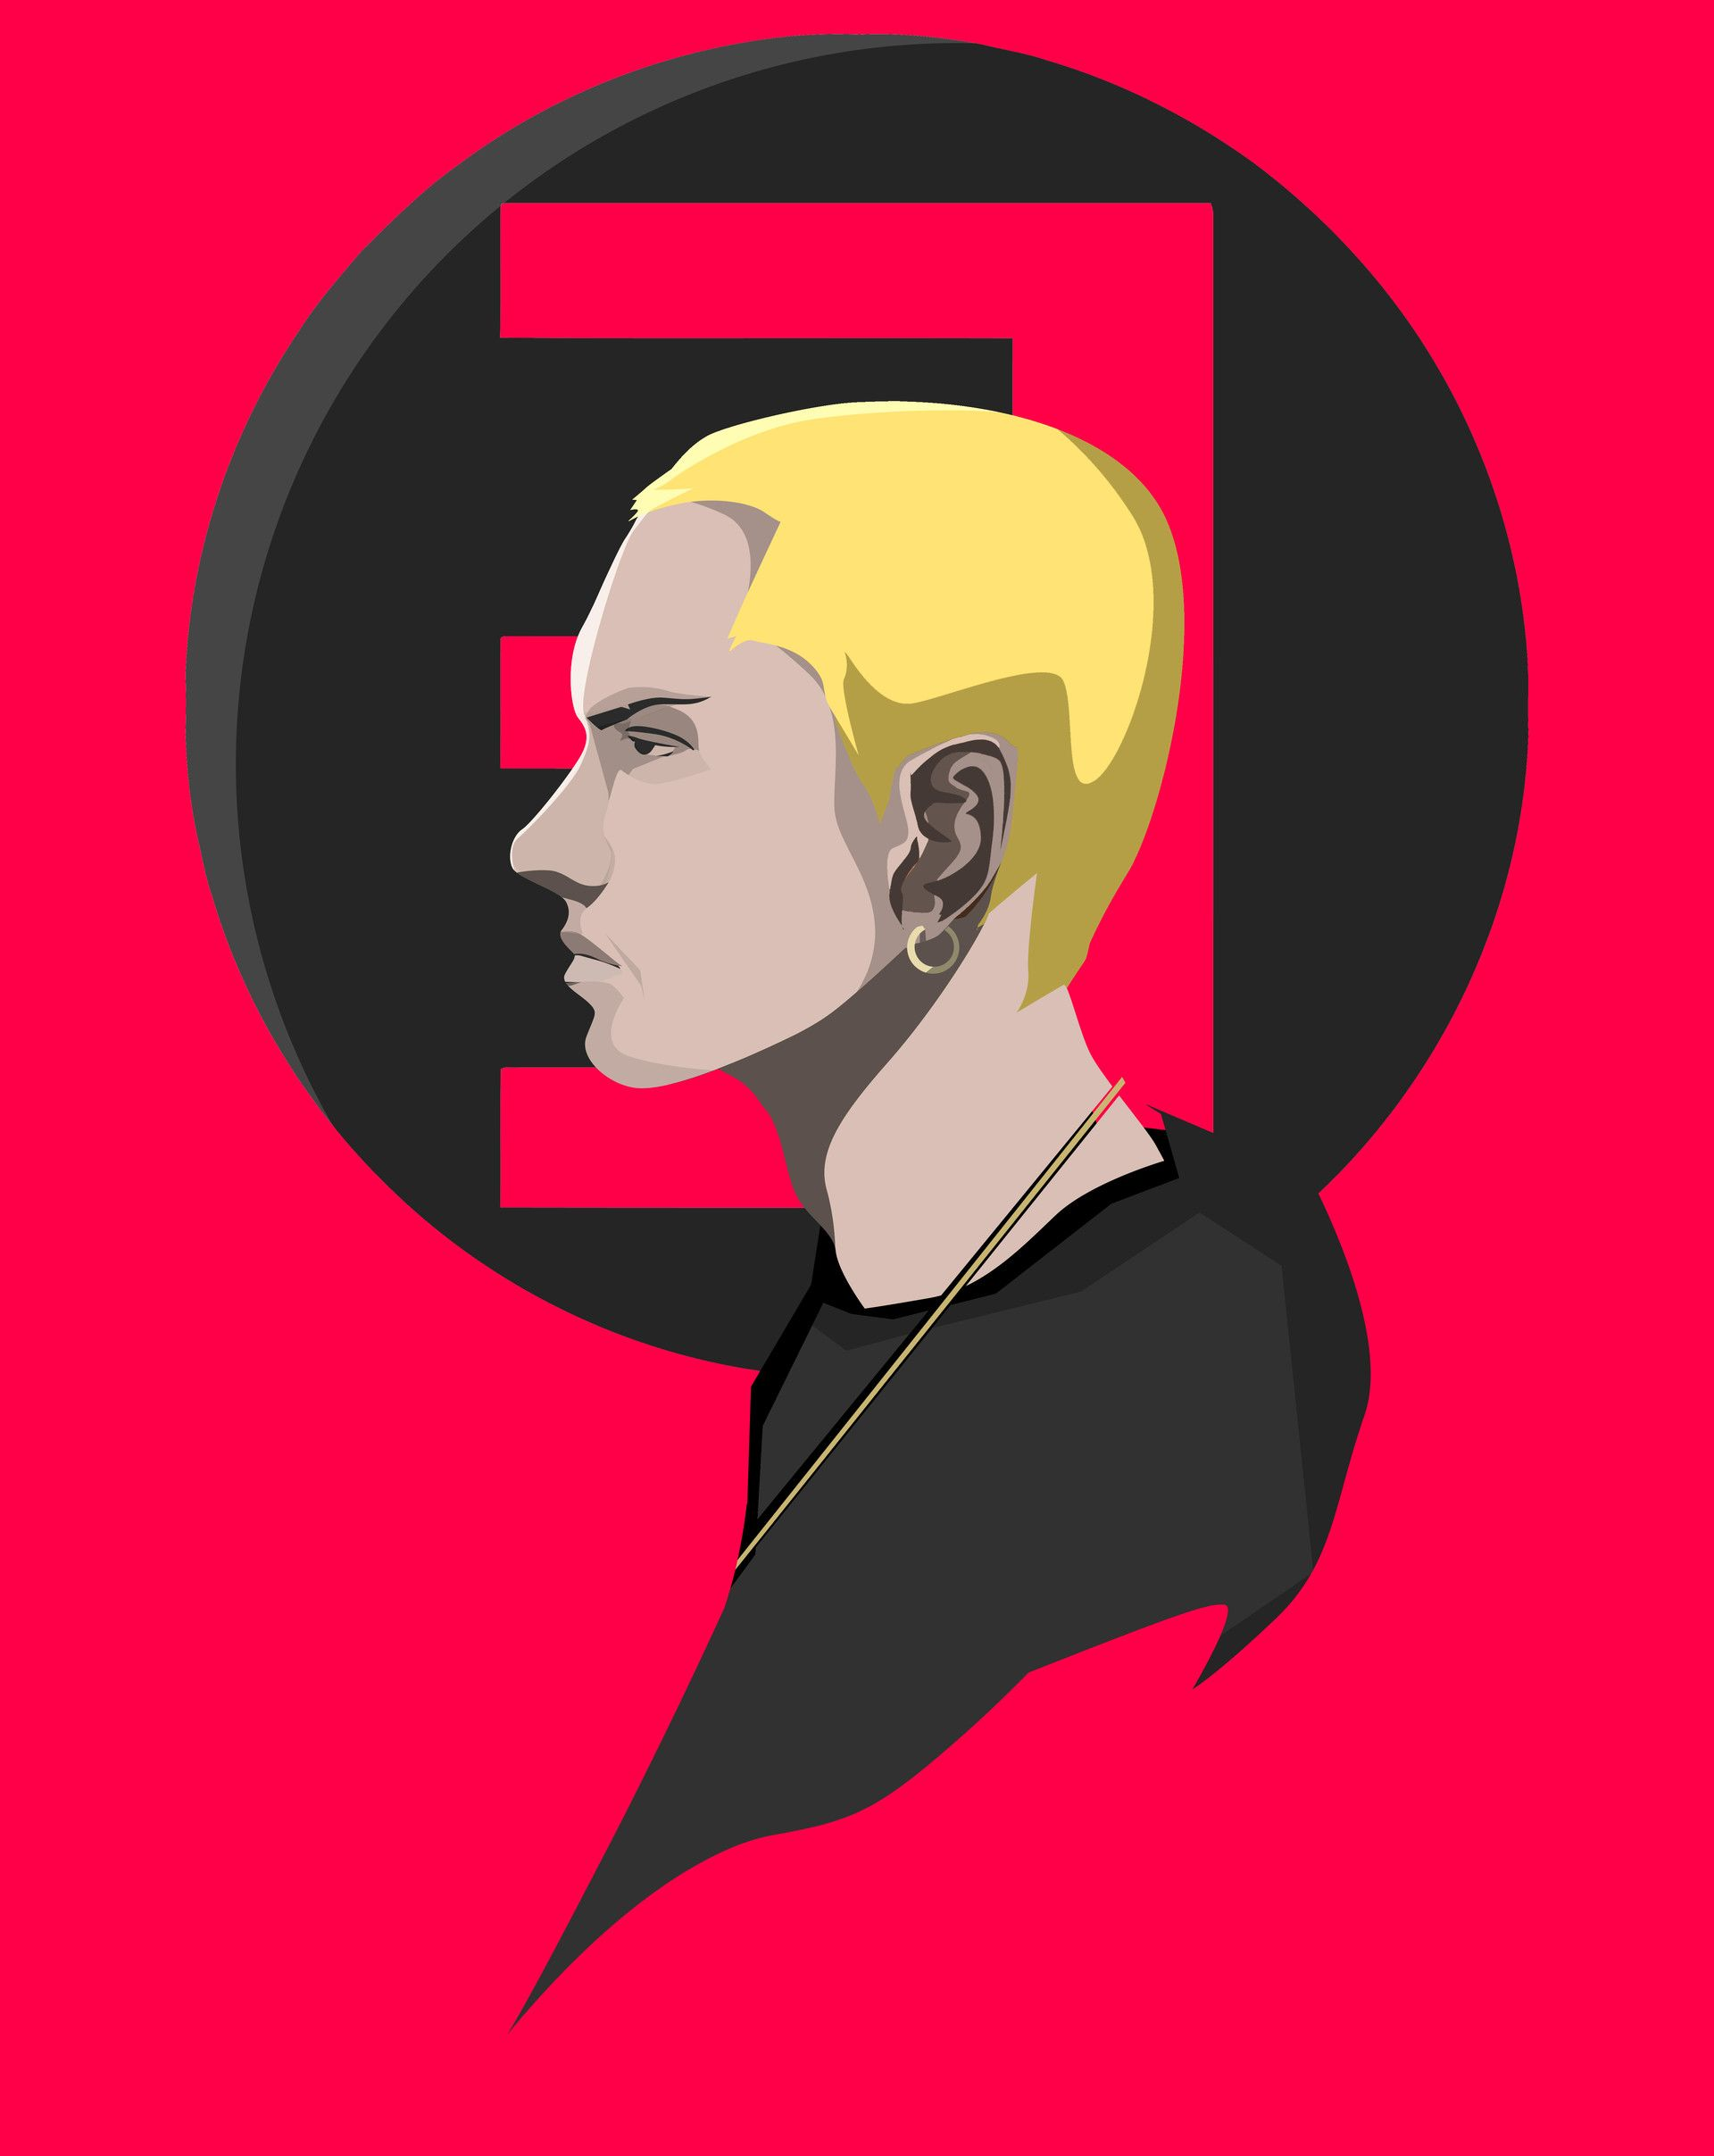 Pin By Her Sisters Keeper On Fanart In 2020 Eminem Wallpapers Eminem Drawing Eminem Rap